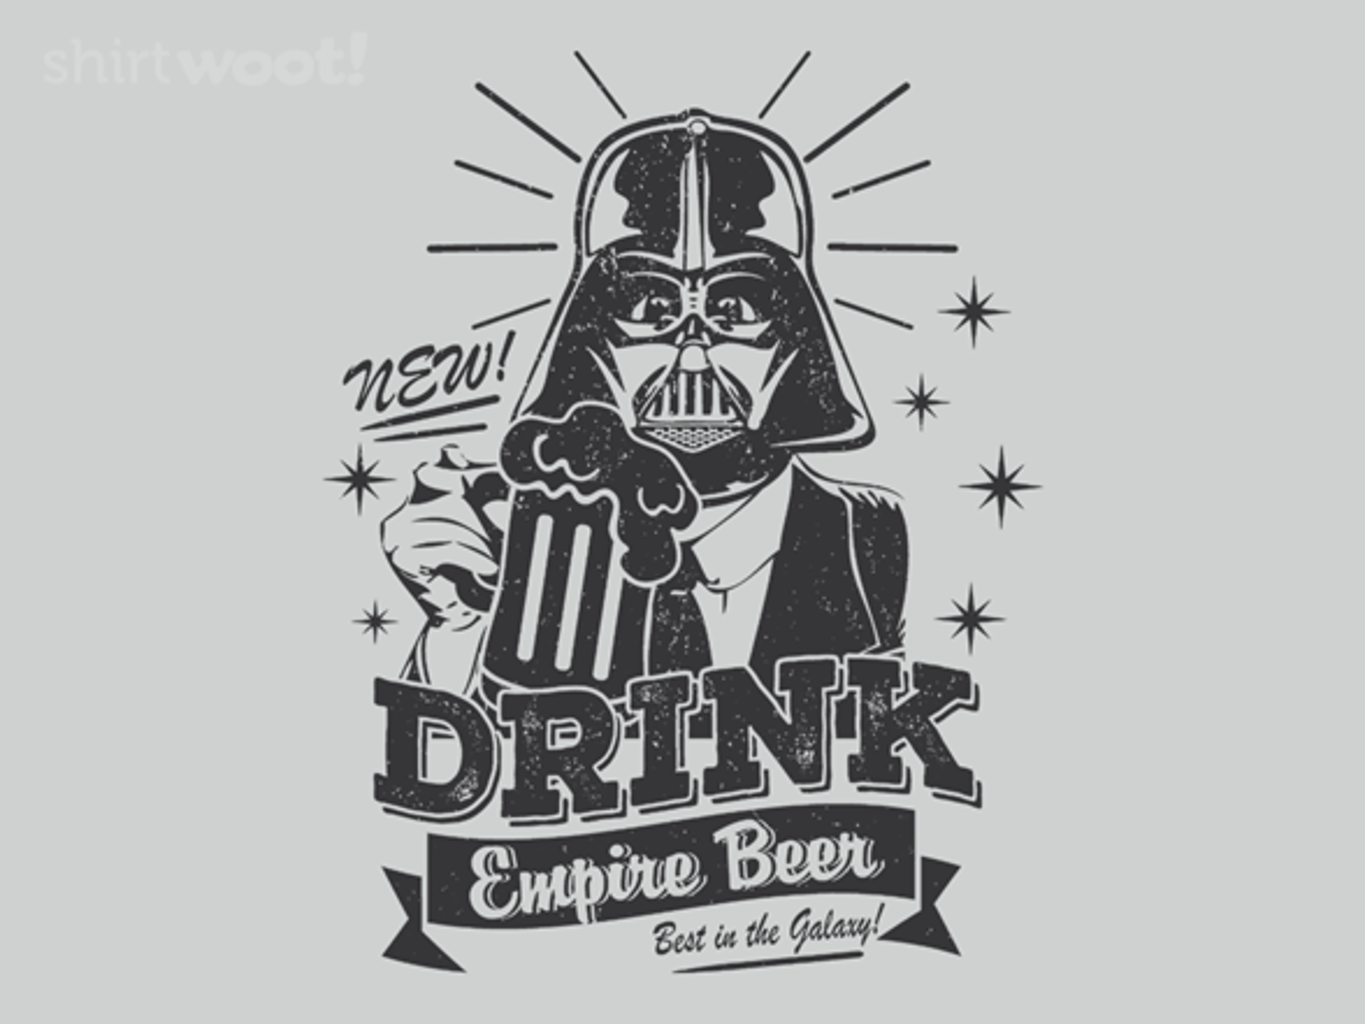 Woot!: Empire Beer